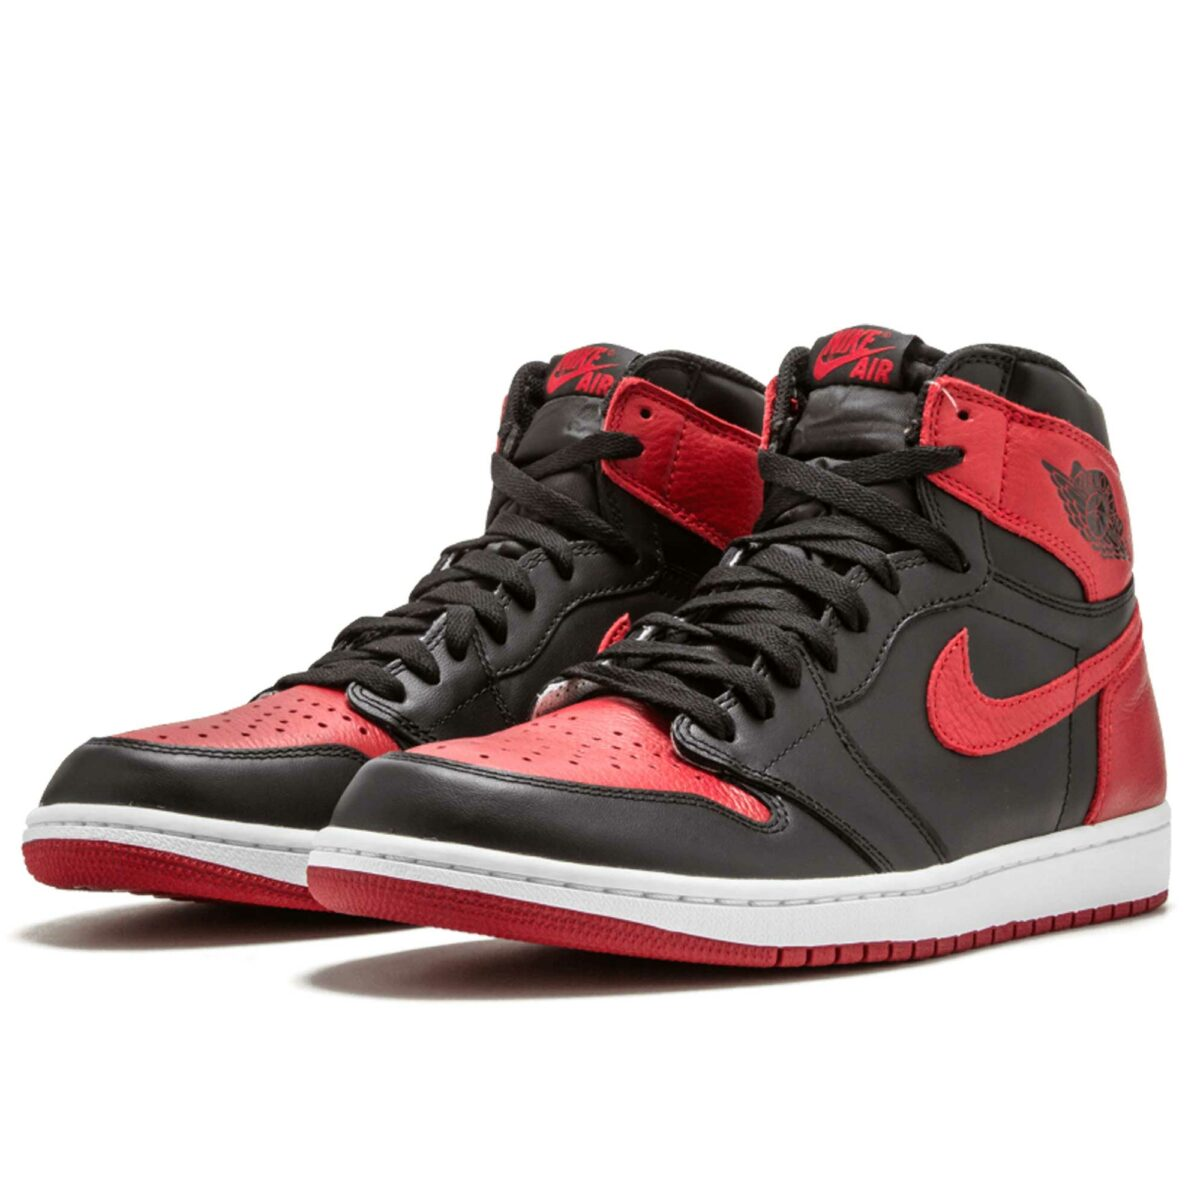 nike air Jordan 1 retro high og black red 555088_001 купить